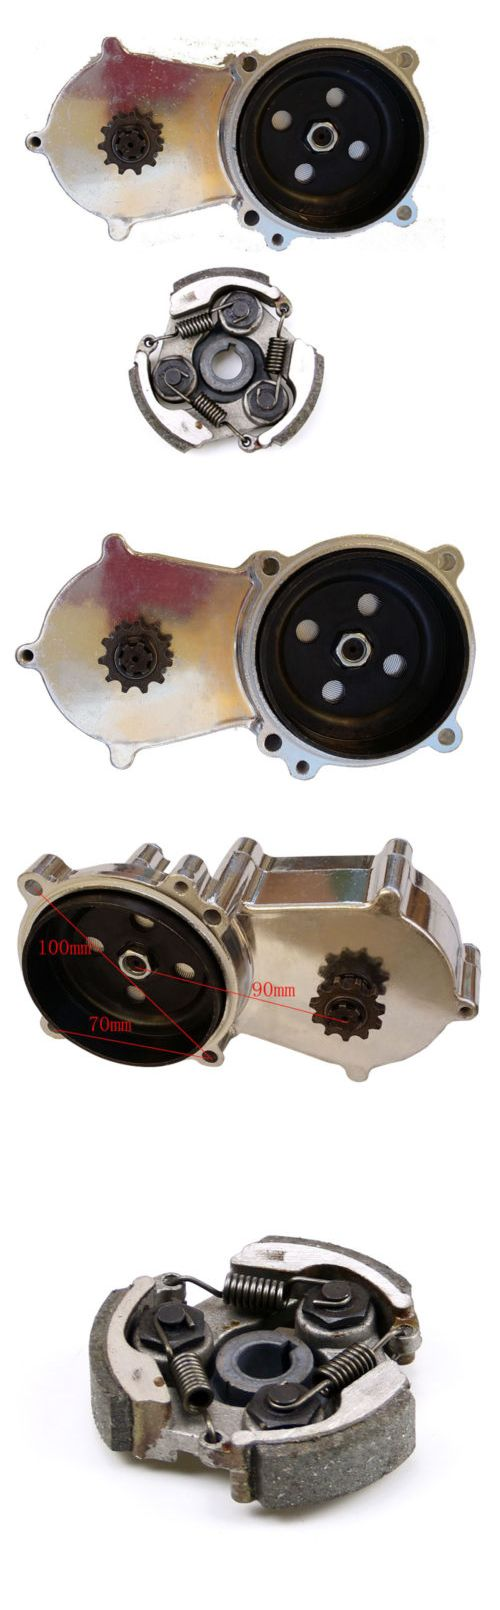 Parts and Accessories 11332: Transmission And Clutch Pad Gear Box For 47 49Cc 2 Stroke Scooter Atv Pocket Xq -> BUY IT NOW ONLY: $31.89 on eBay!